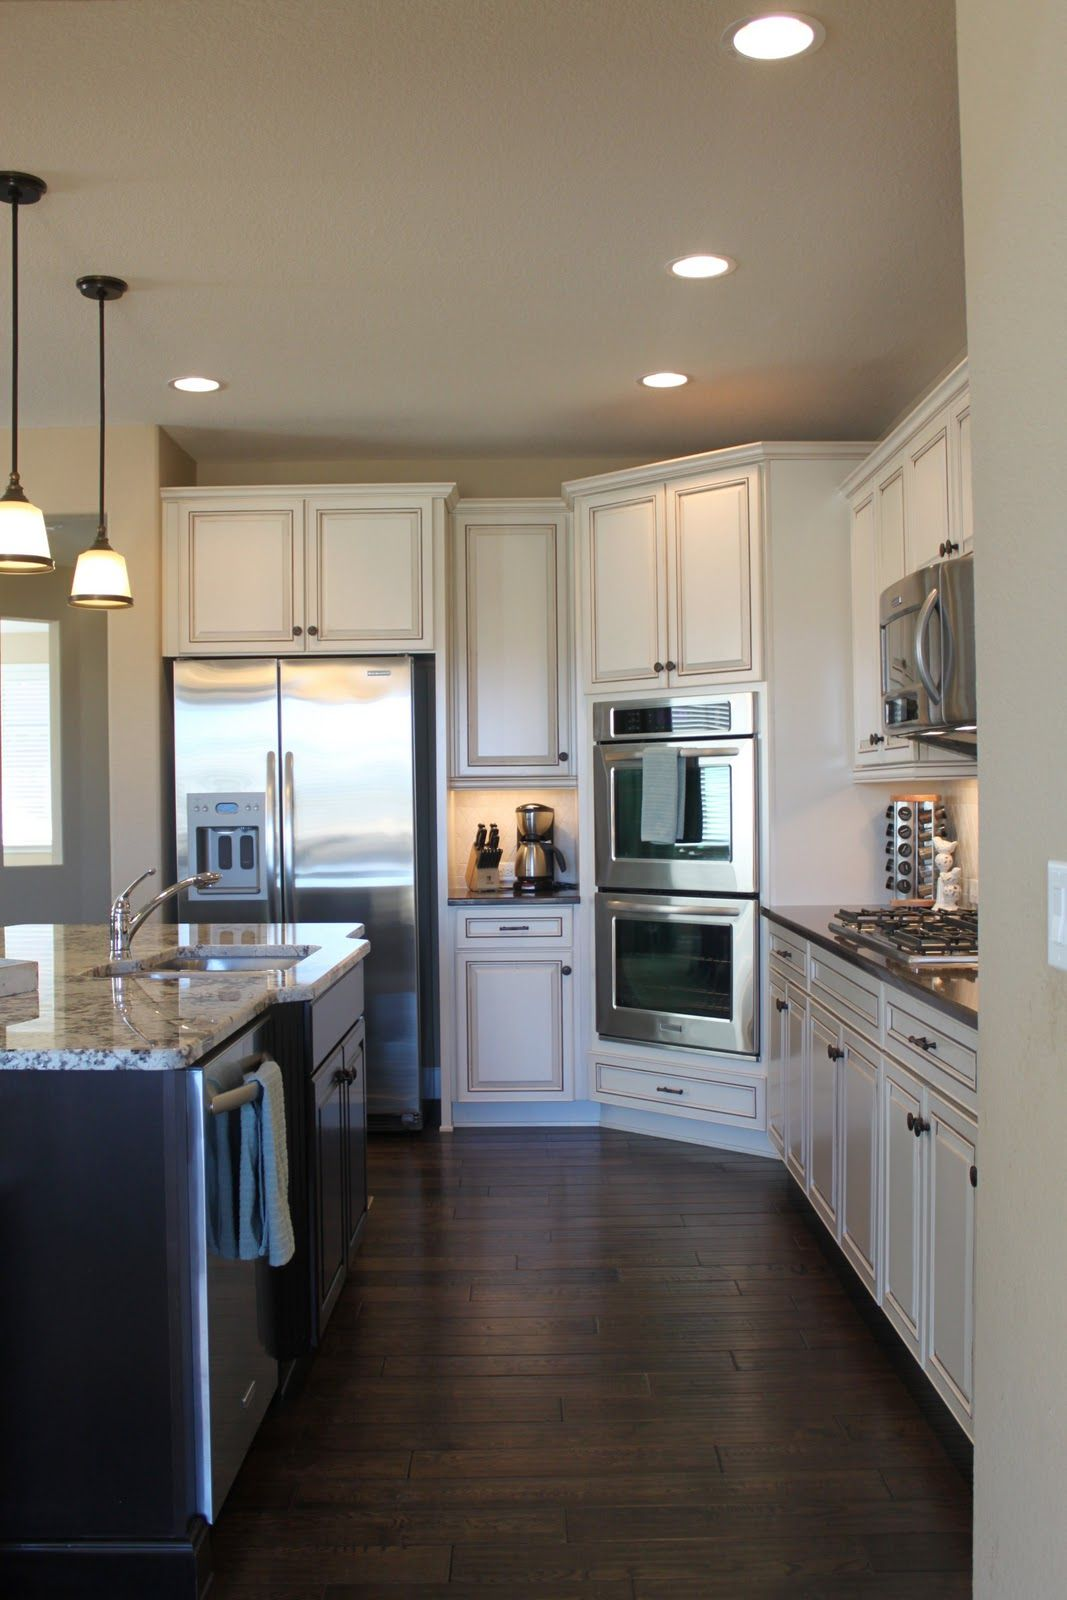 off white kitchen cabinets Love the white cabinets and wide plank floors